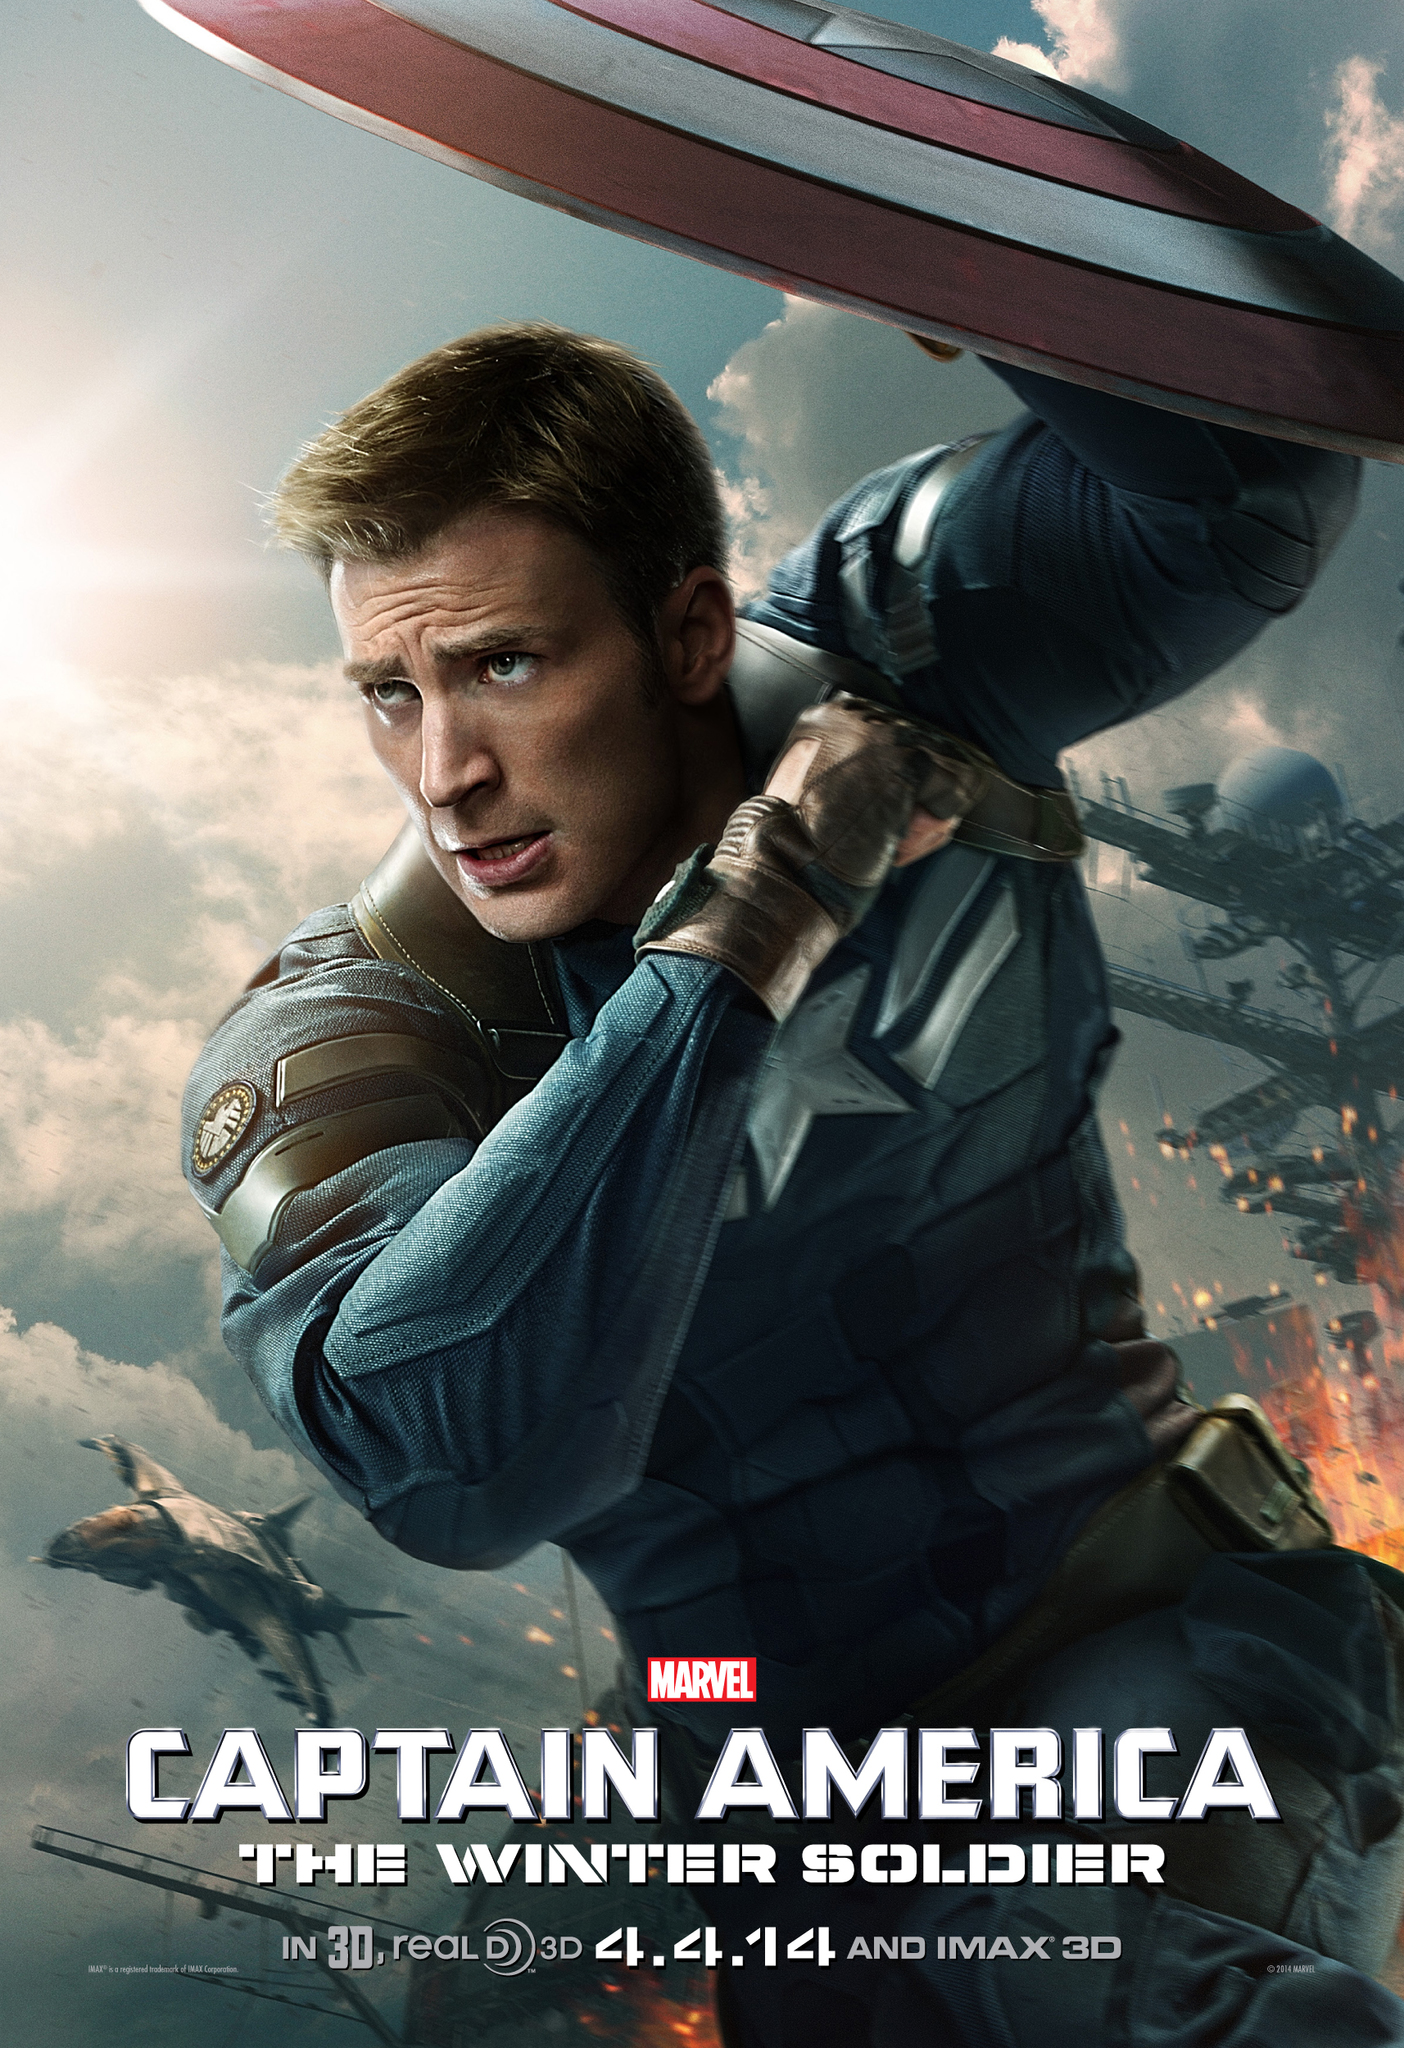 10 Minute Marvel Episode 26 – WandaVision Moved Up and The Winter Soldier